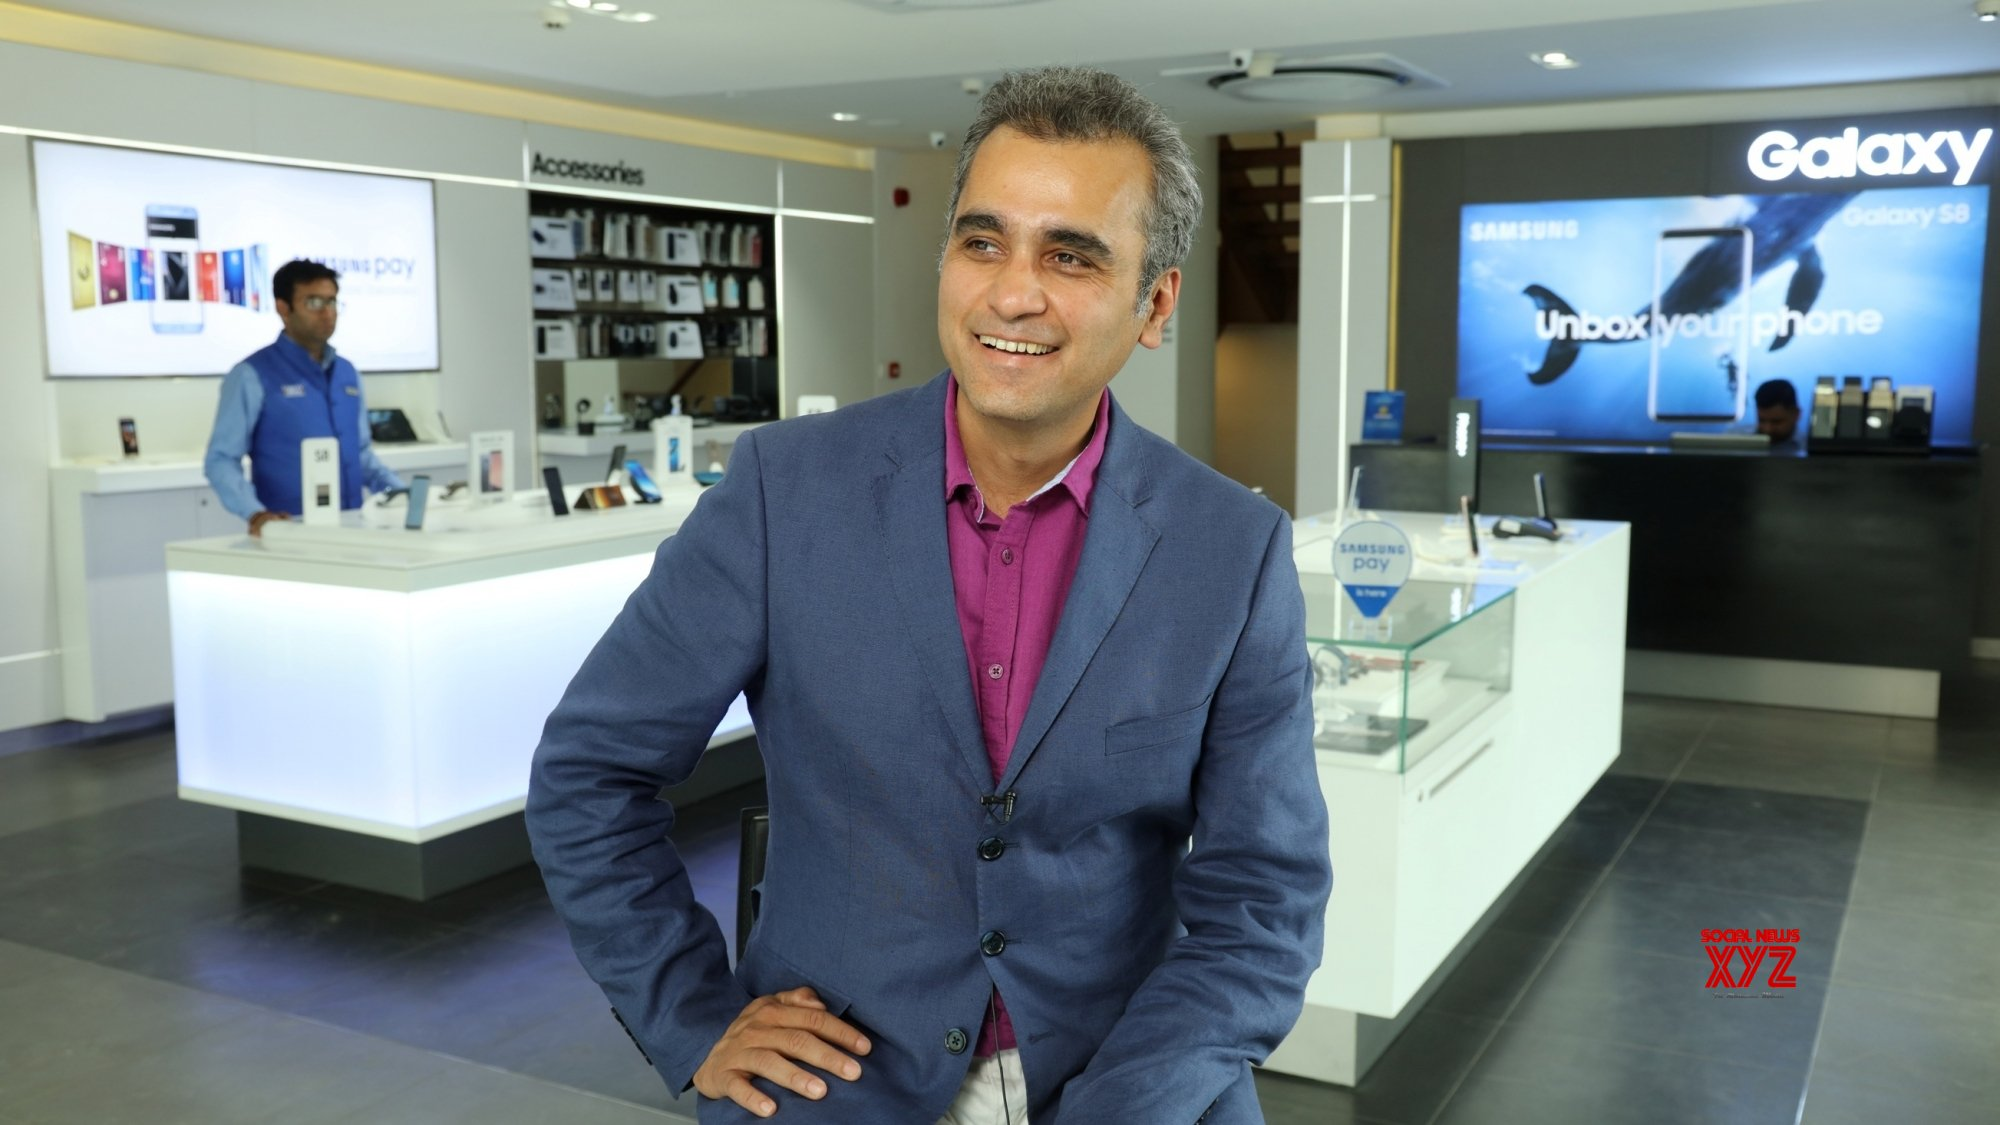 Samsung doesn't see India with one lens or one portfolio: Asim Warsi